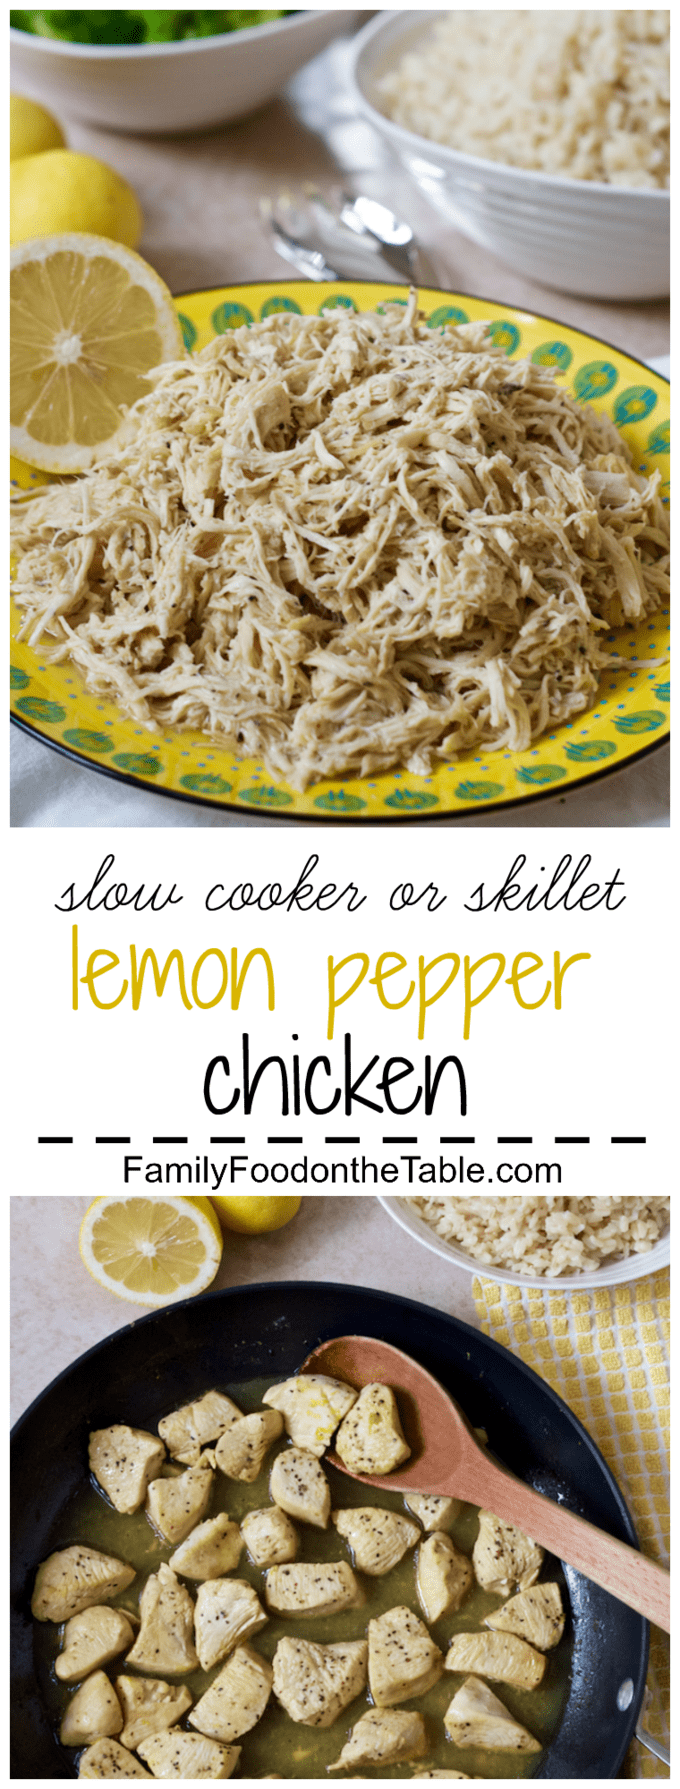 Flavorful, easy, bright lemon-pepper chicken you can make in the slow cooker or on the stove, plus 6 ways to serve it! | FamilyFoodontheTable.com